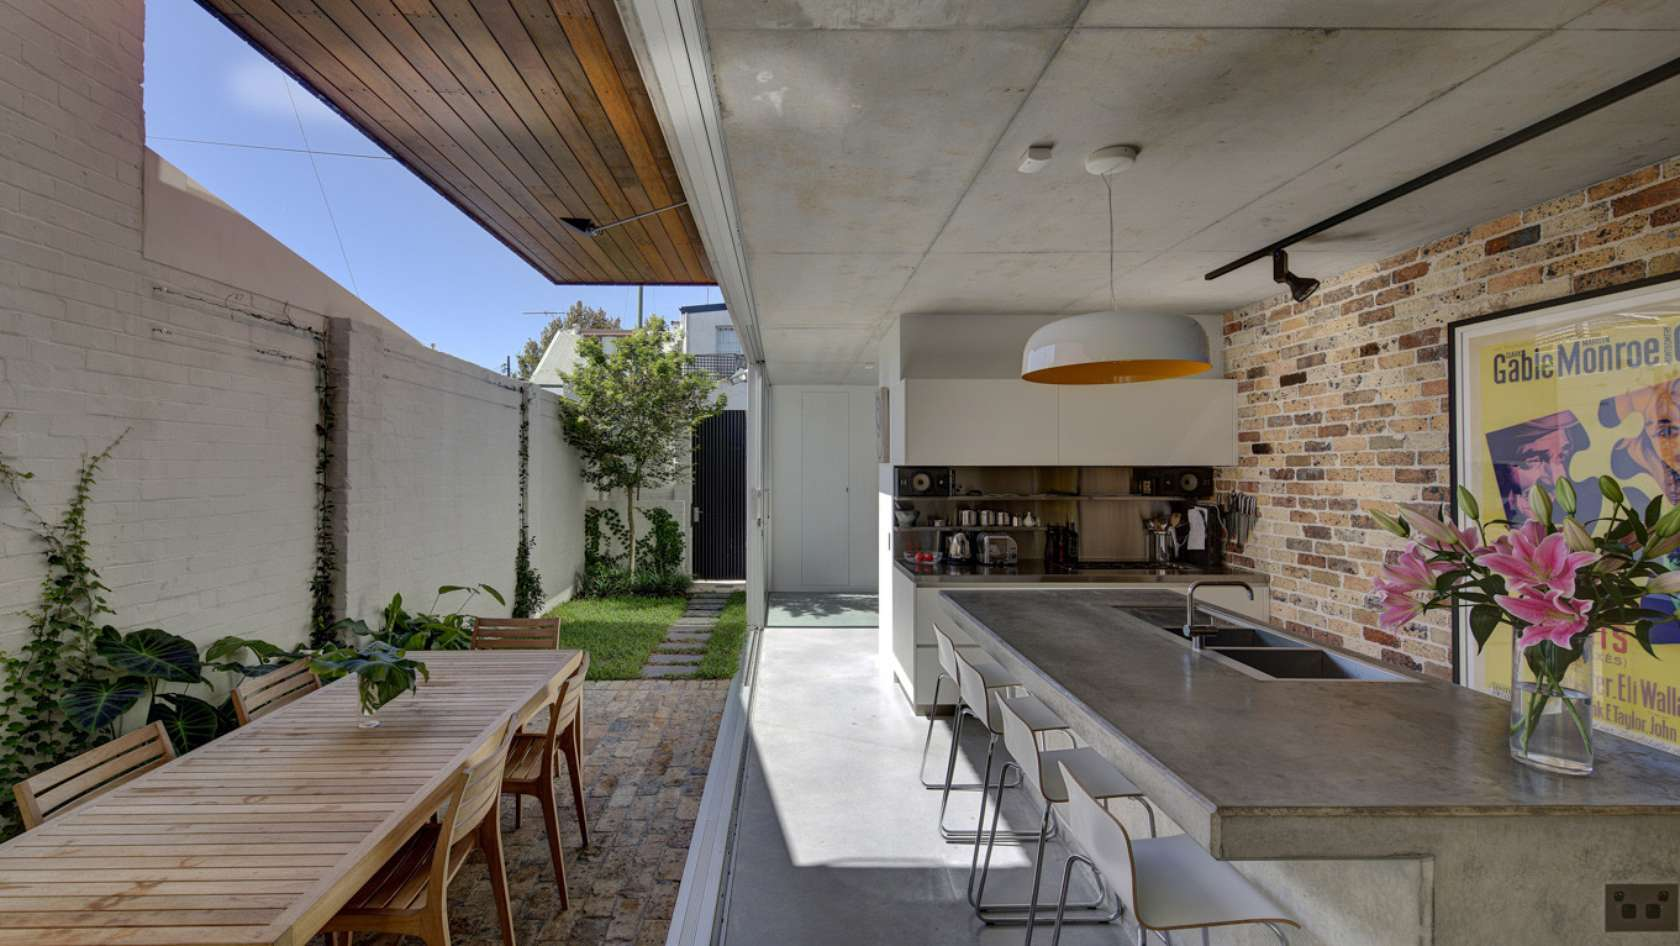 Long Courtyard House by Scale Architecture (via Lunchbox Architect)